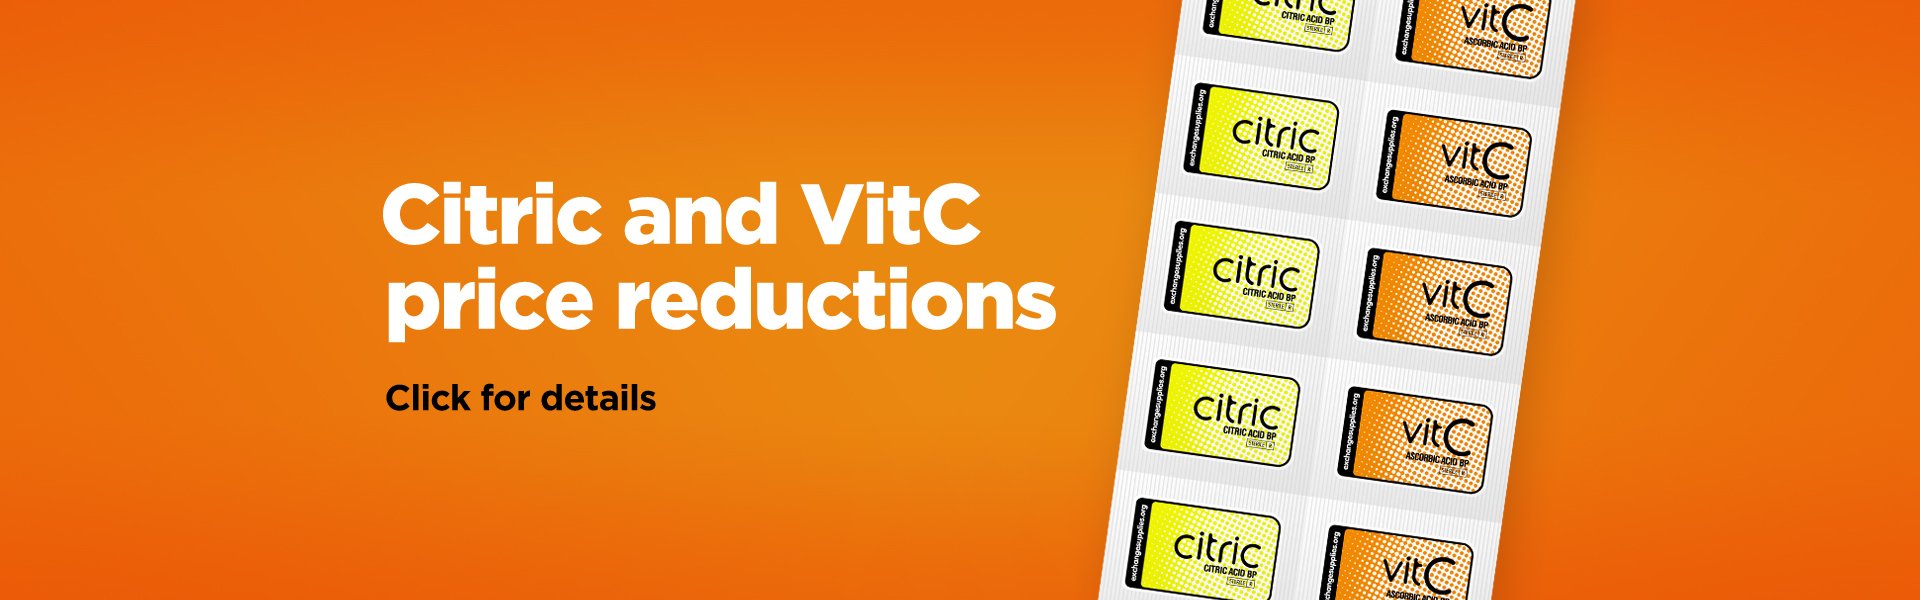 Citric and VitC